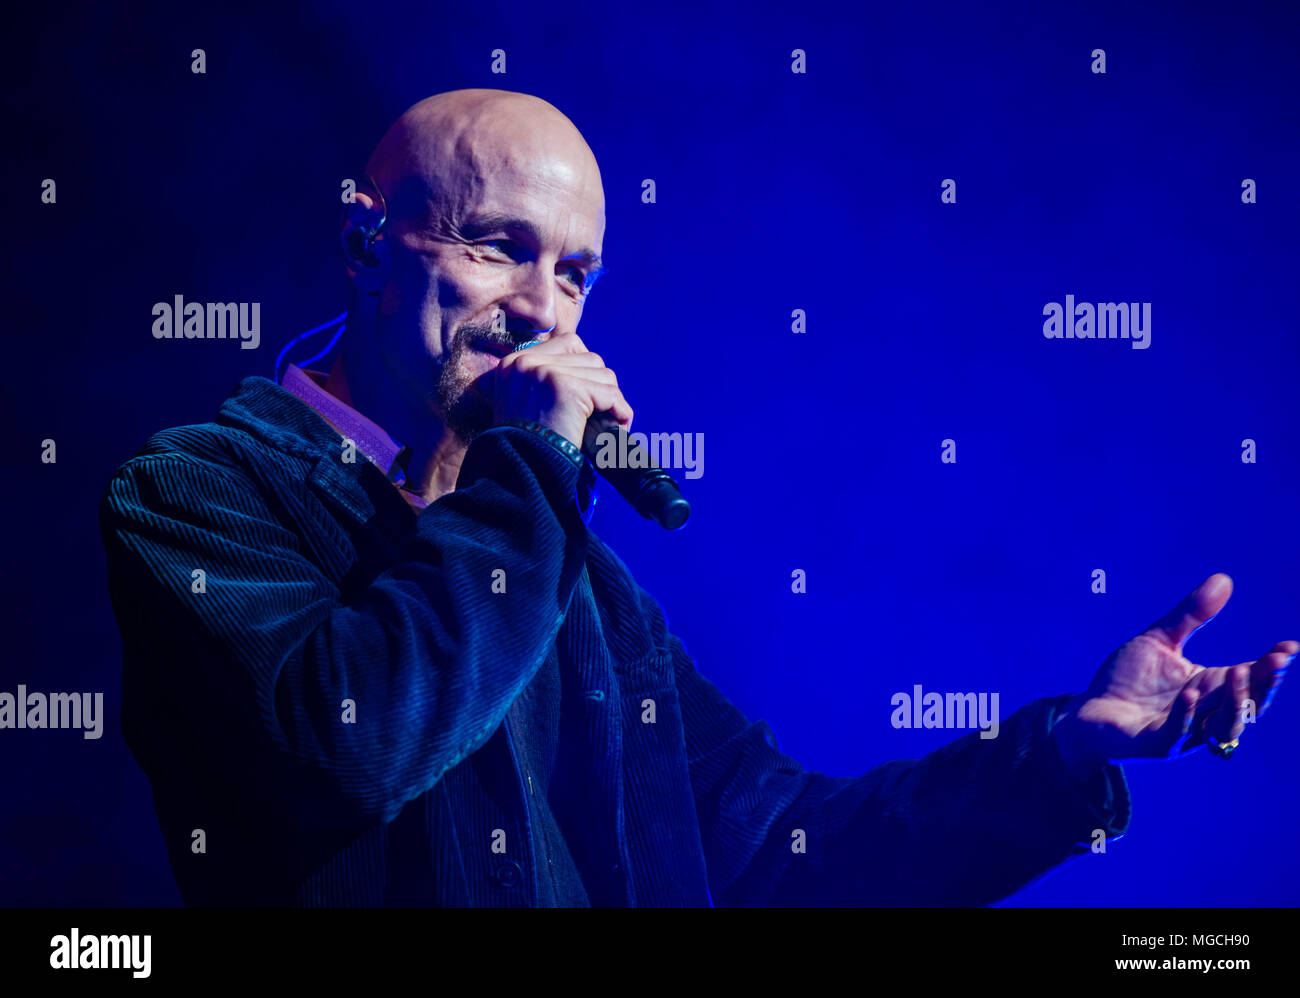 Tim Booth from the band James, performing live at the Deer Shed Festival, Baldersby Park, near Topcliffe in North Yorkshire, 23rd November 2014 - Stock Image